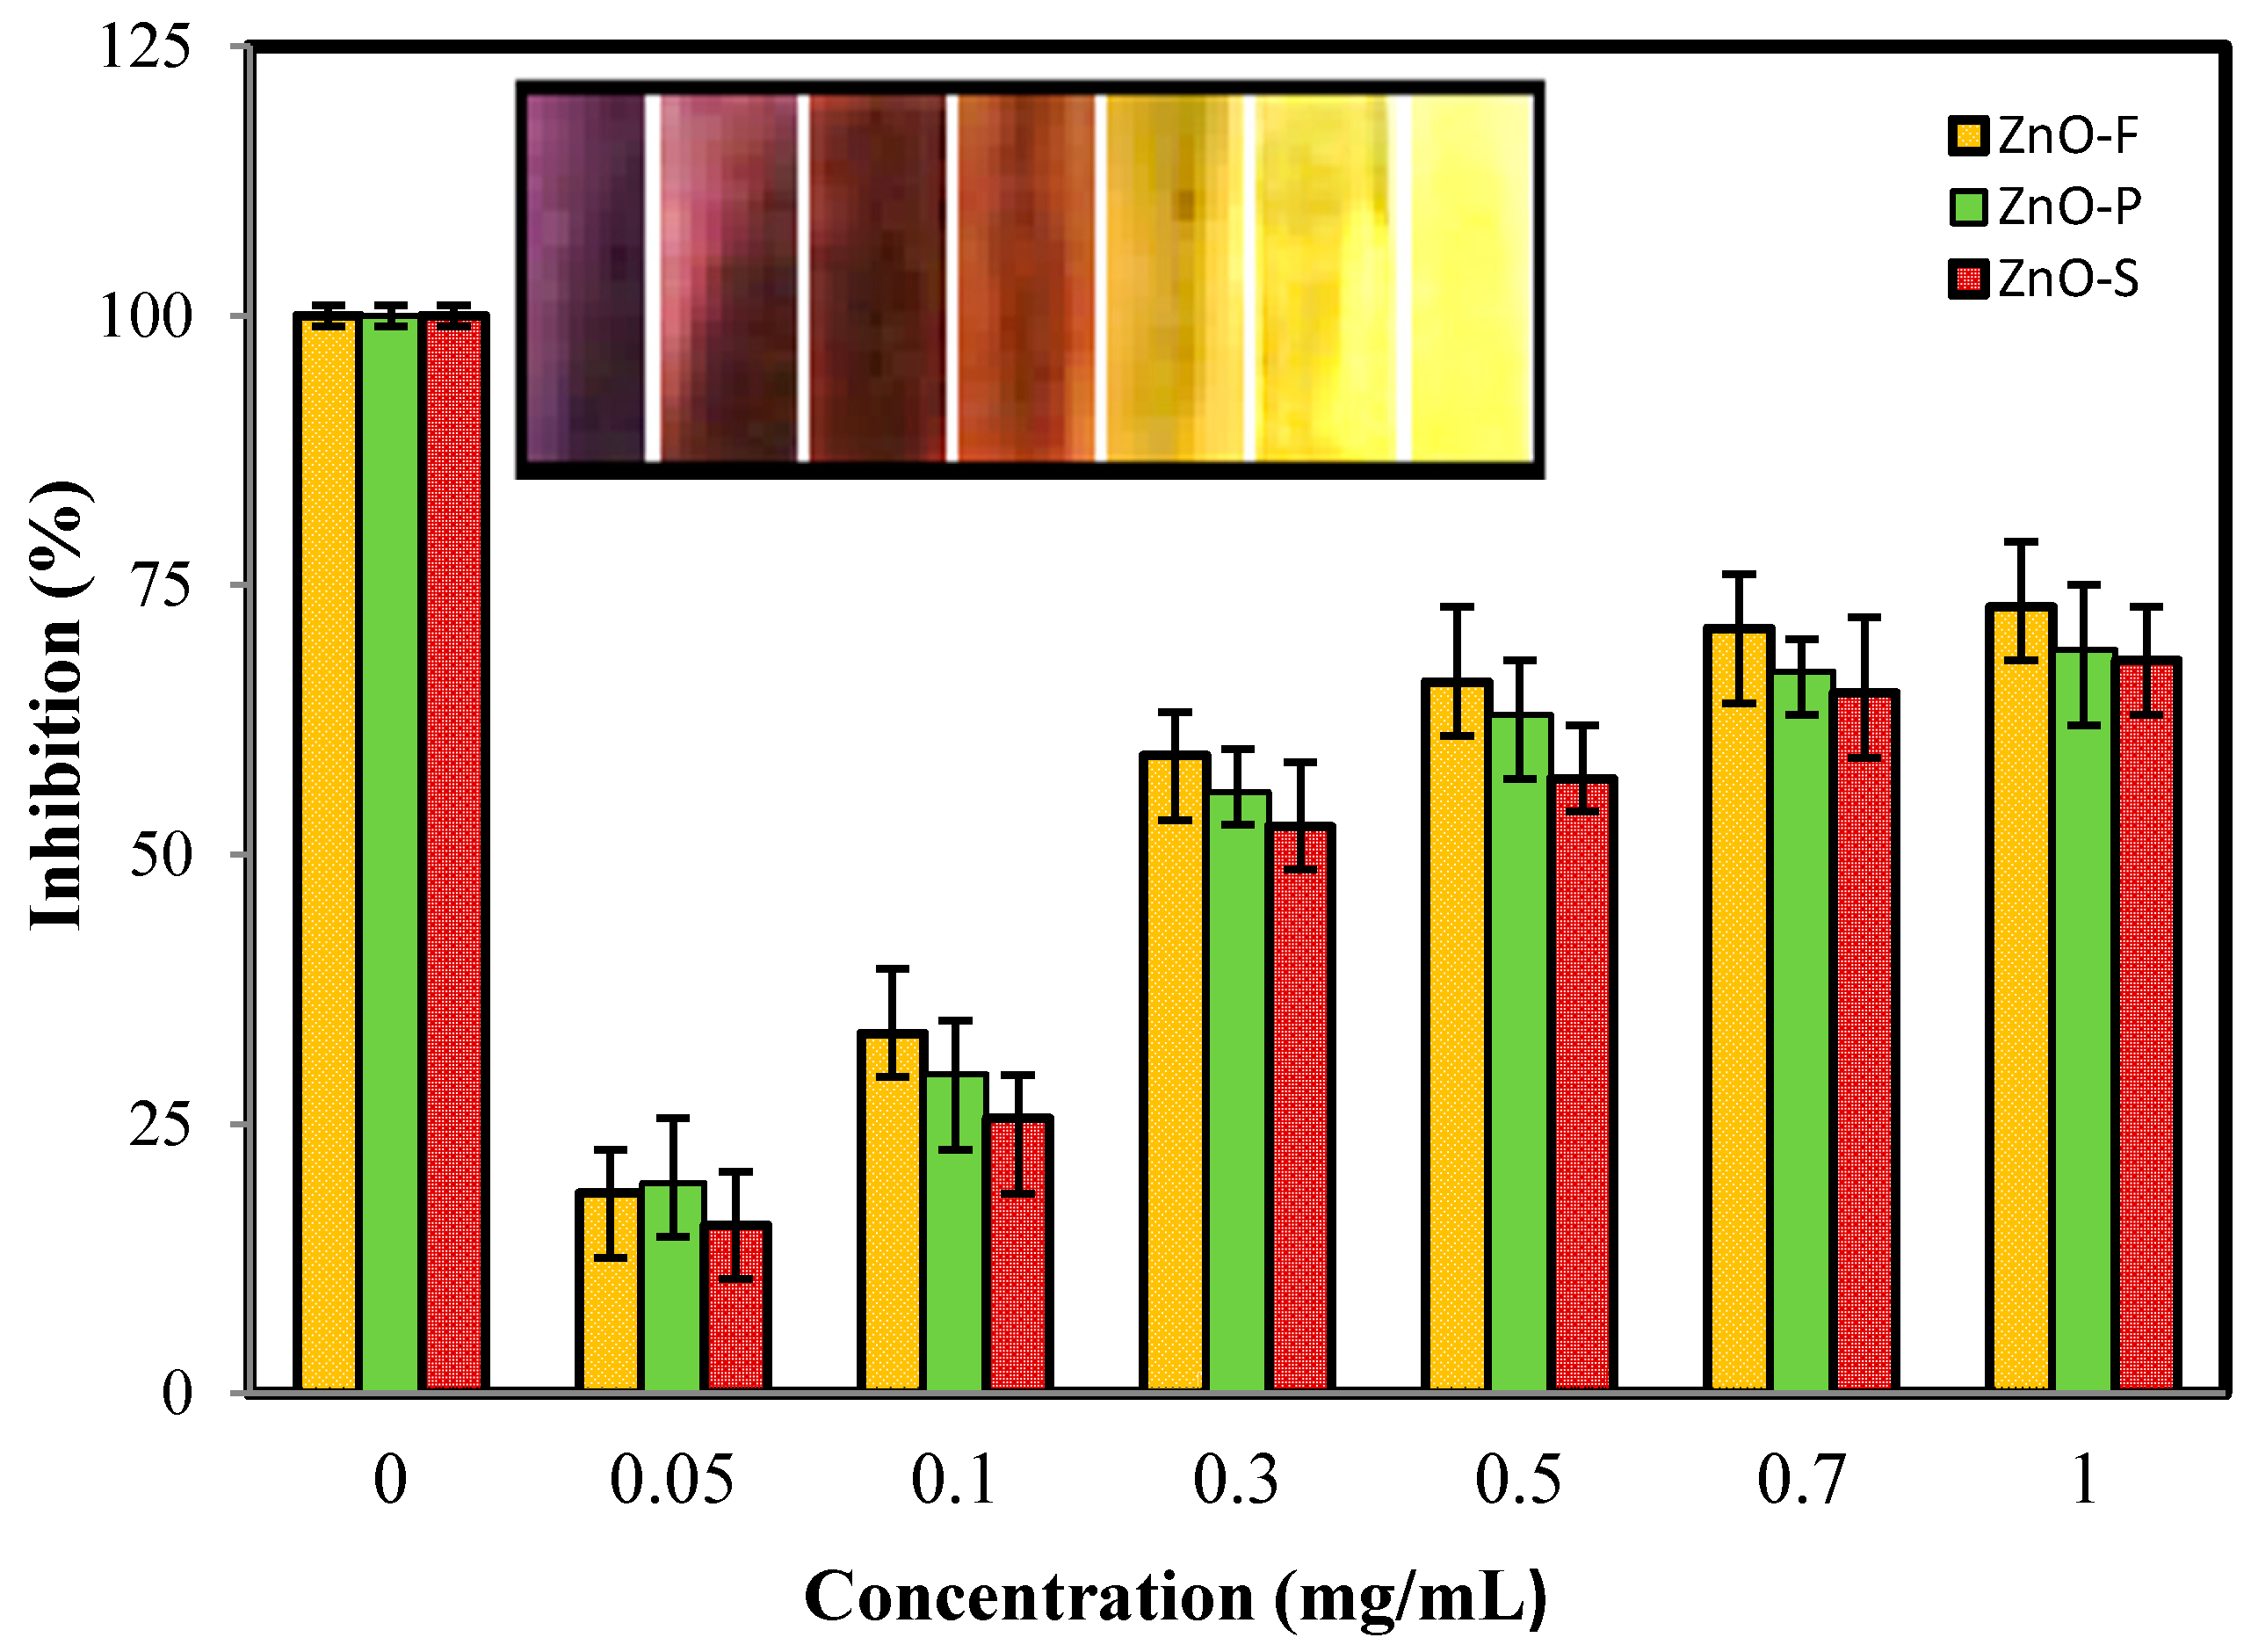 thesis synthesis zno nanoparticles Co-precipitation synthesis and characterization of nanocrystalline zinc zno nanoparticles co-precipitation synthesis and characterization of.